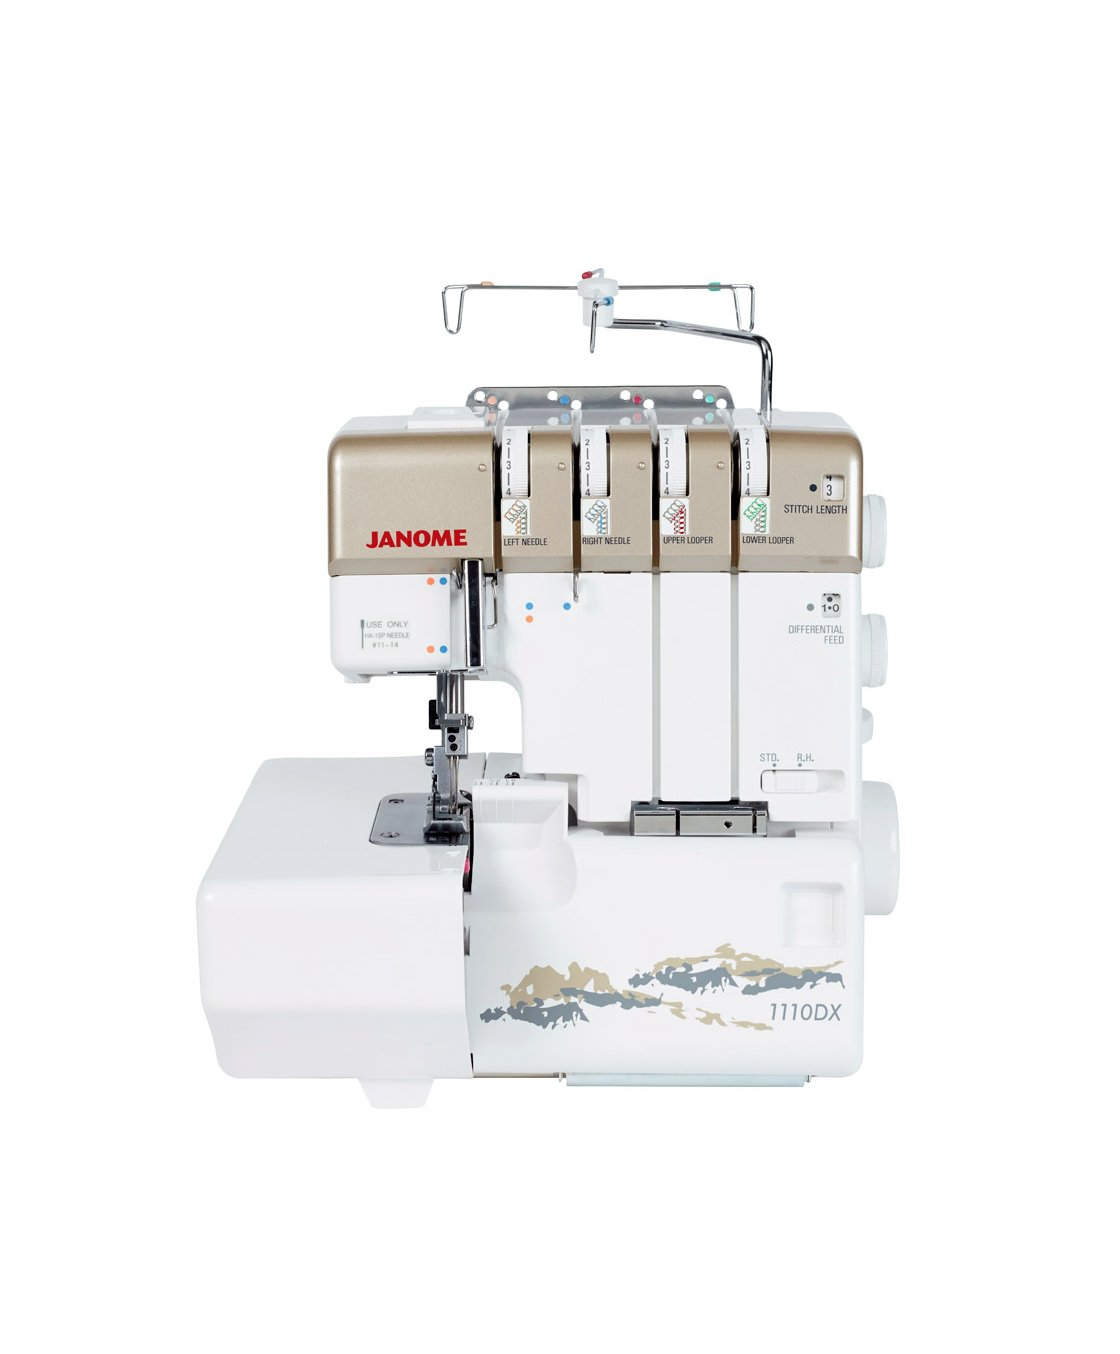 Janome 1110DX Overlocker Discount Sale Thread Blades Differential Feed Spotlight Perth WA Western Australia Domestic Serger